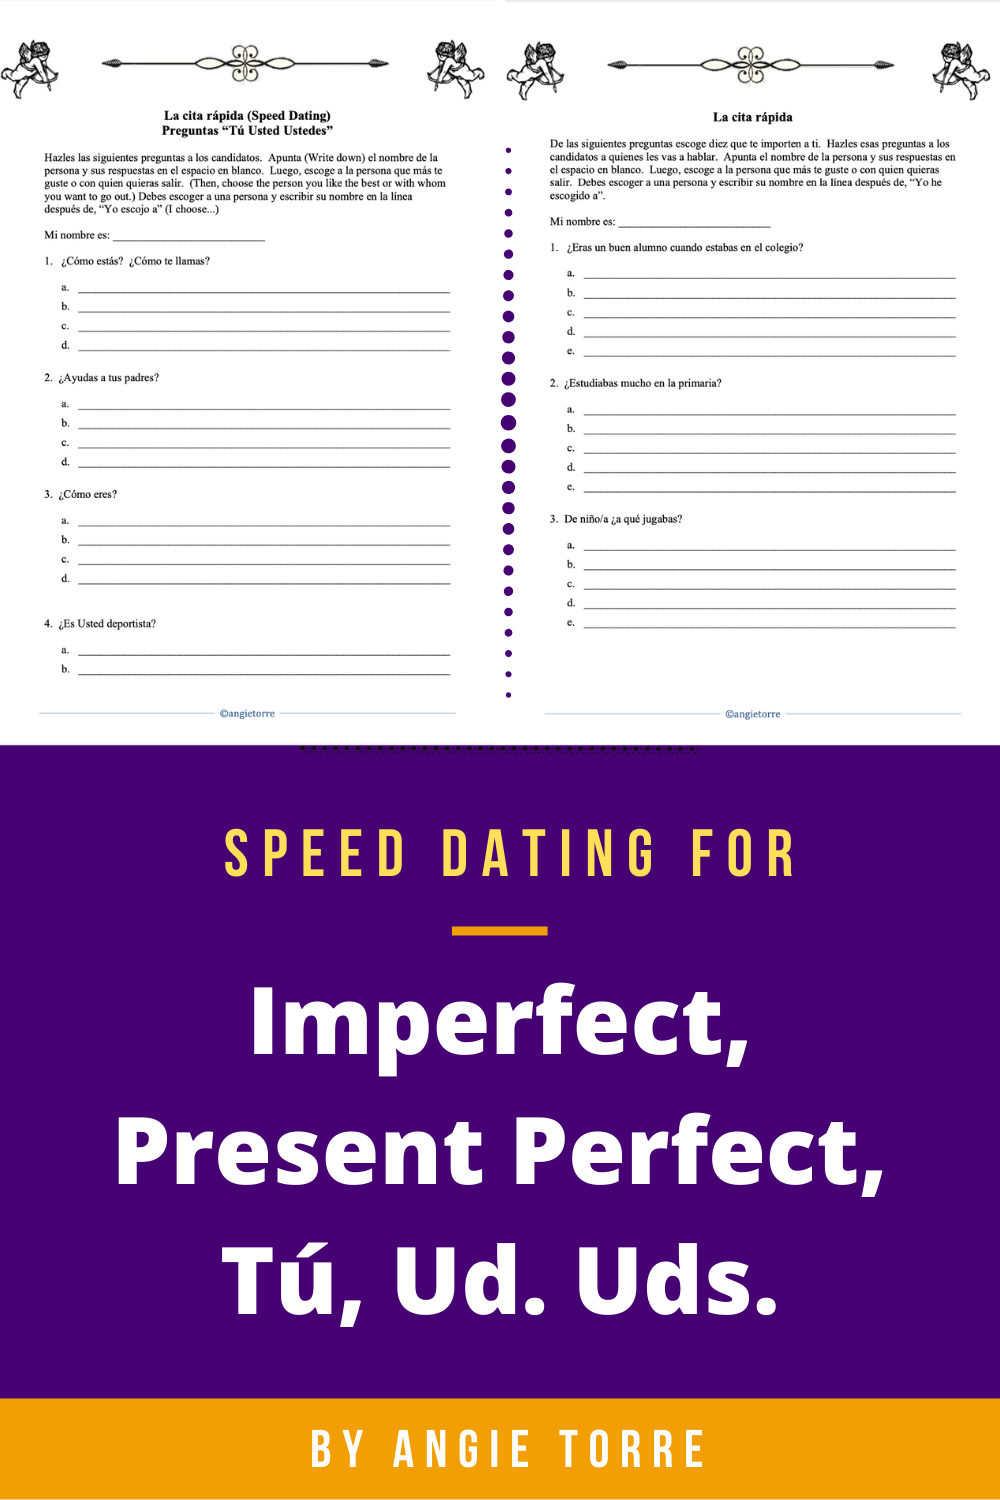 Spanish Speed Dating Game For The Imperfect Present Perfect Tu Usted Ustedes How To Speak Spanish Speed Dating Speaking Activities